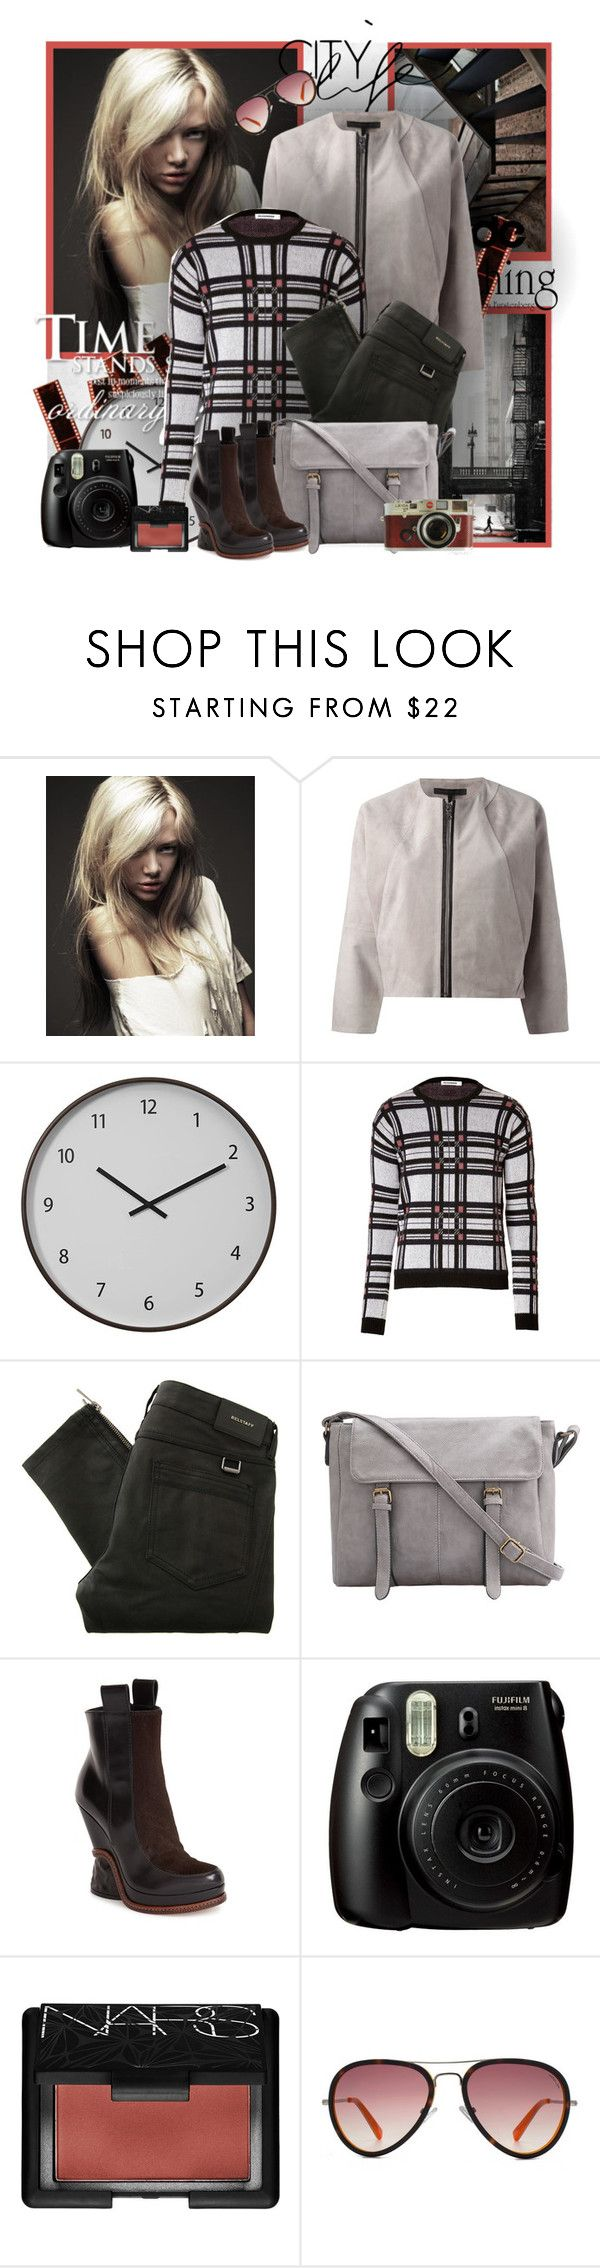 """№ 507"" by olga3001 ❤ liked on Polyvore featuring Chloé, dVb Victoria Beckham, Crate and Barrel, Jil Sander, Belstaff, Fendi, Fujifilm, Leica, NARS Cosmetics and HOOK LDN"